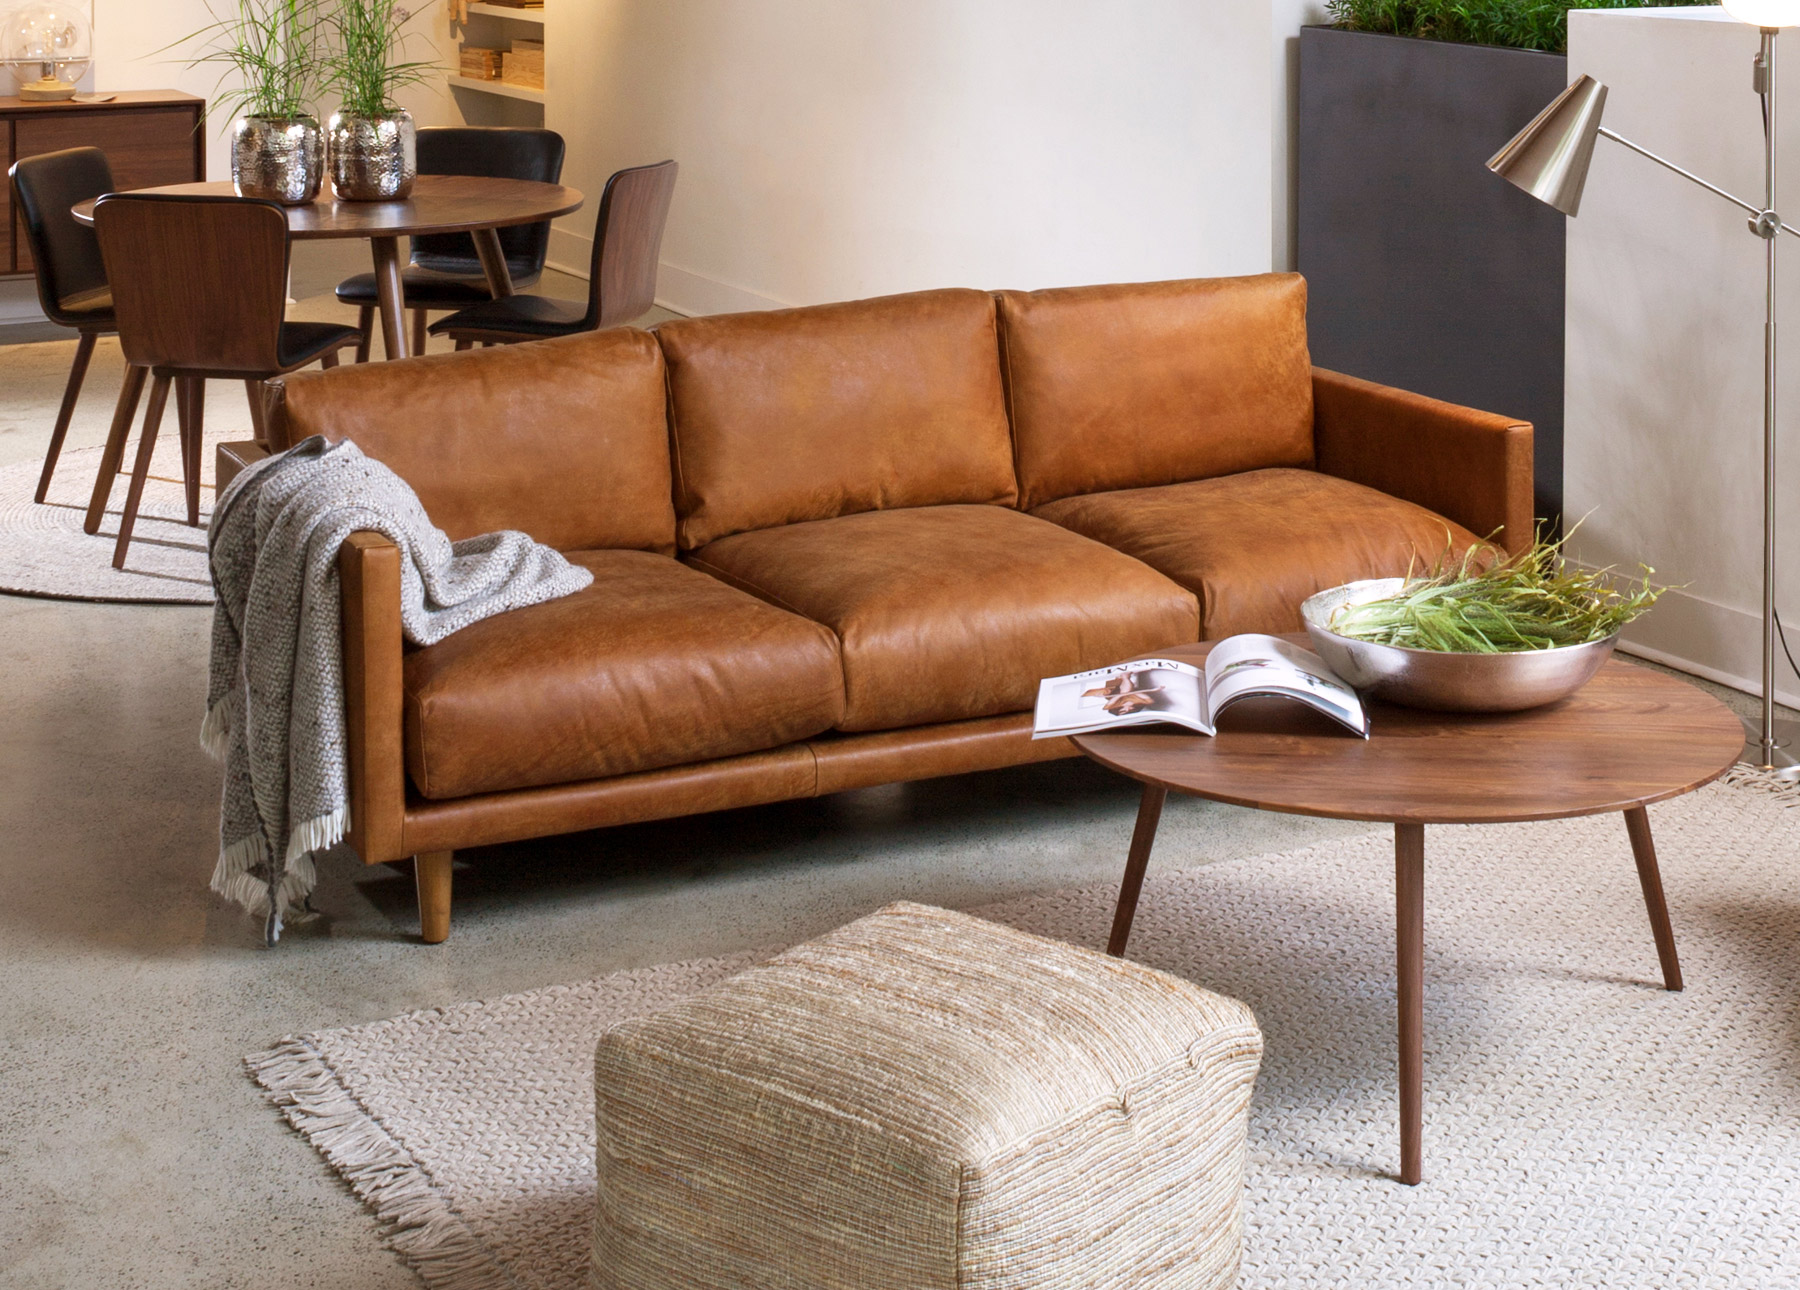 Brown Real Leather Couch How To Choose And Care For Leather Furniture Articulate